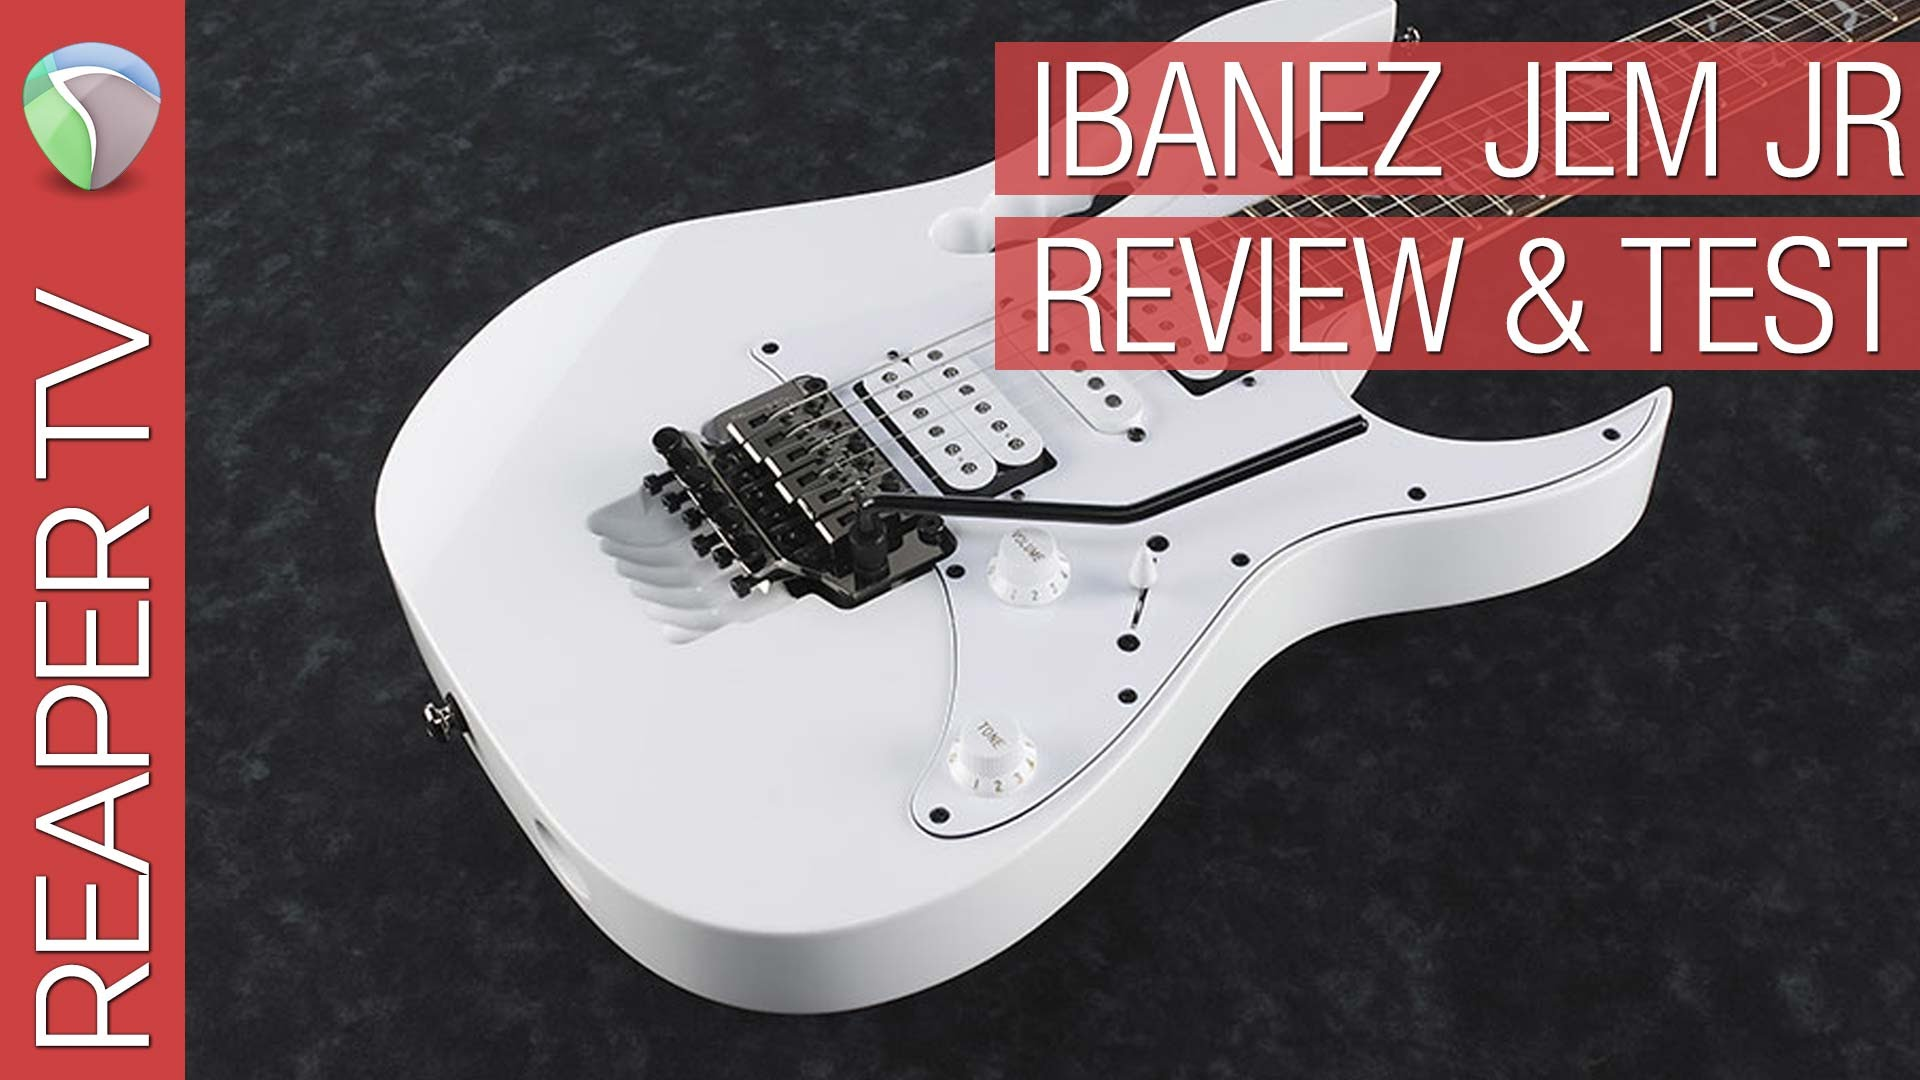 Ibanez Steve Vai Jem Jr 2015 First Impressions, Review & Playthrough